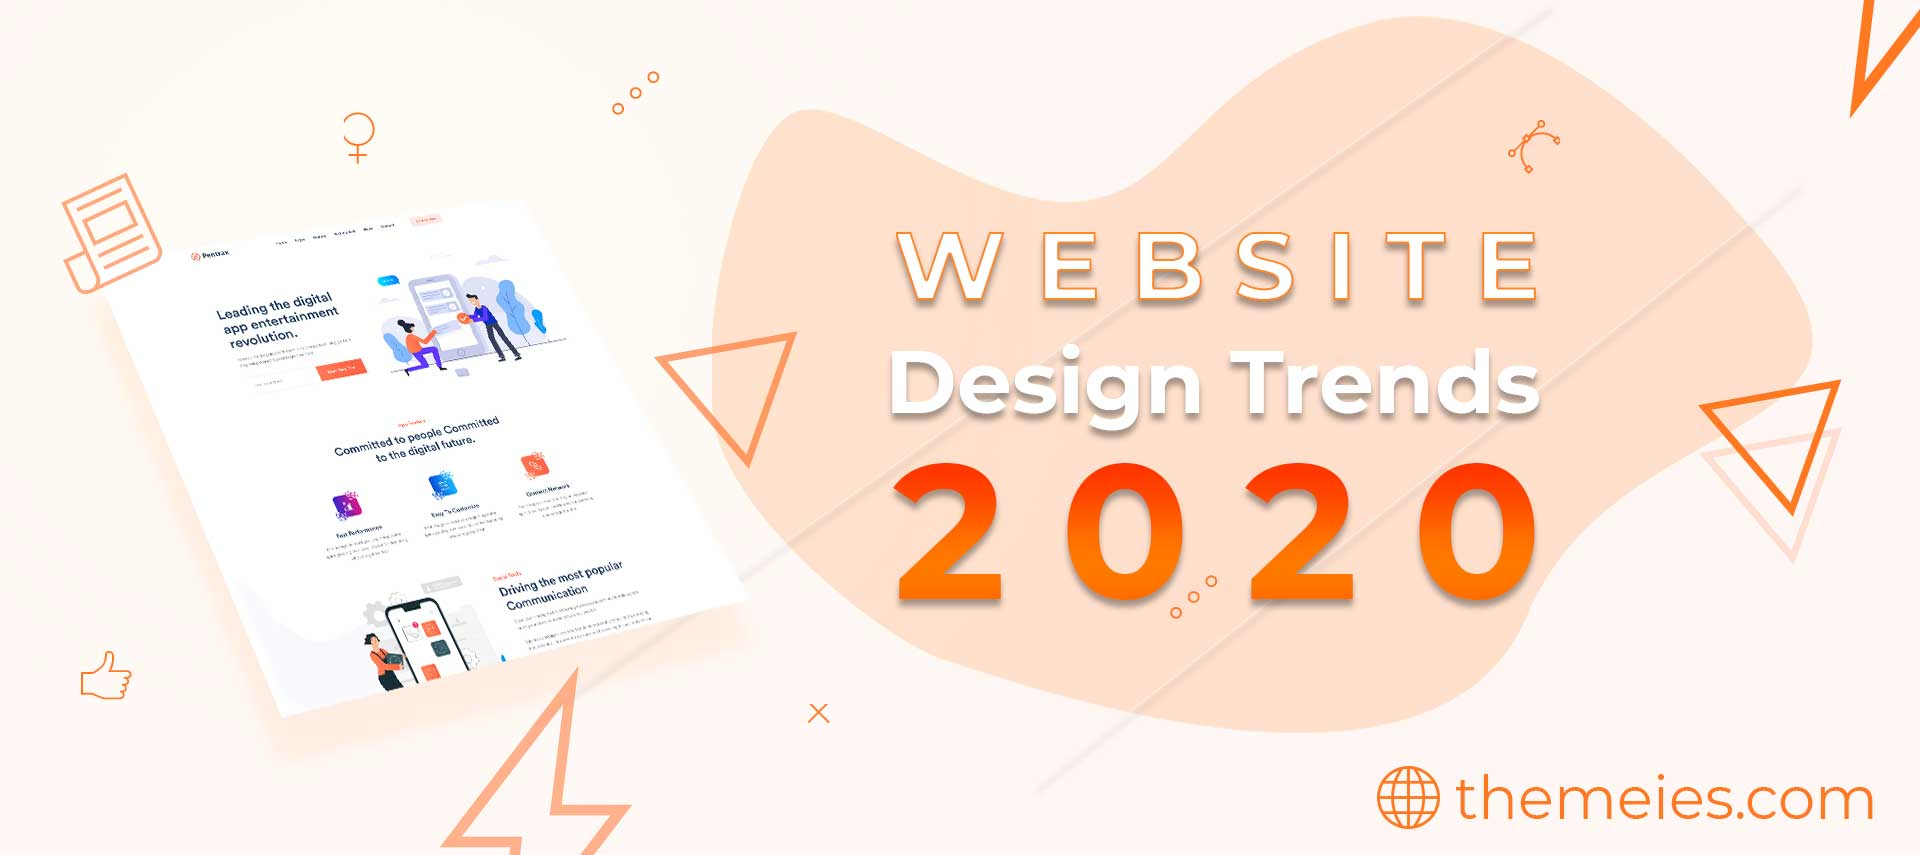 Most Exciting Web Design Trends To Follow in 2020